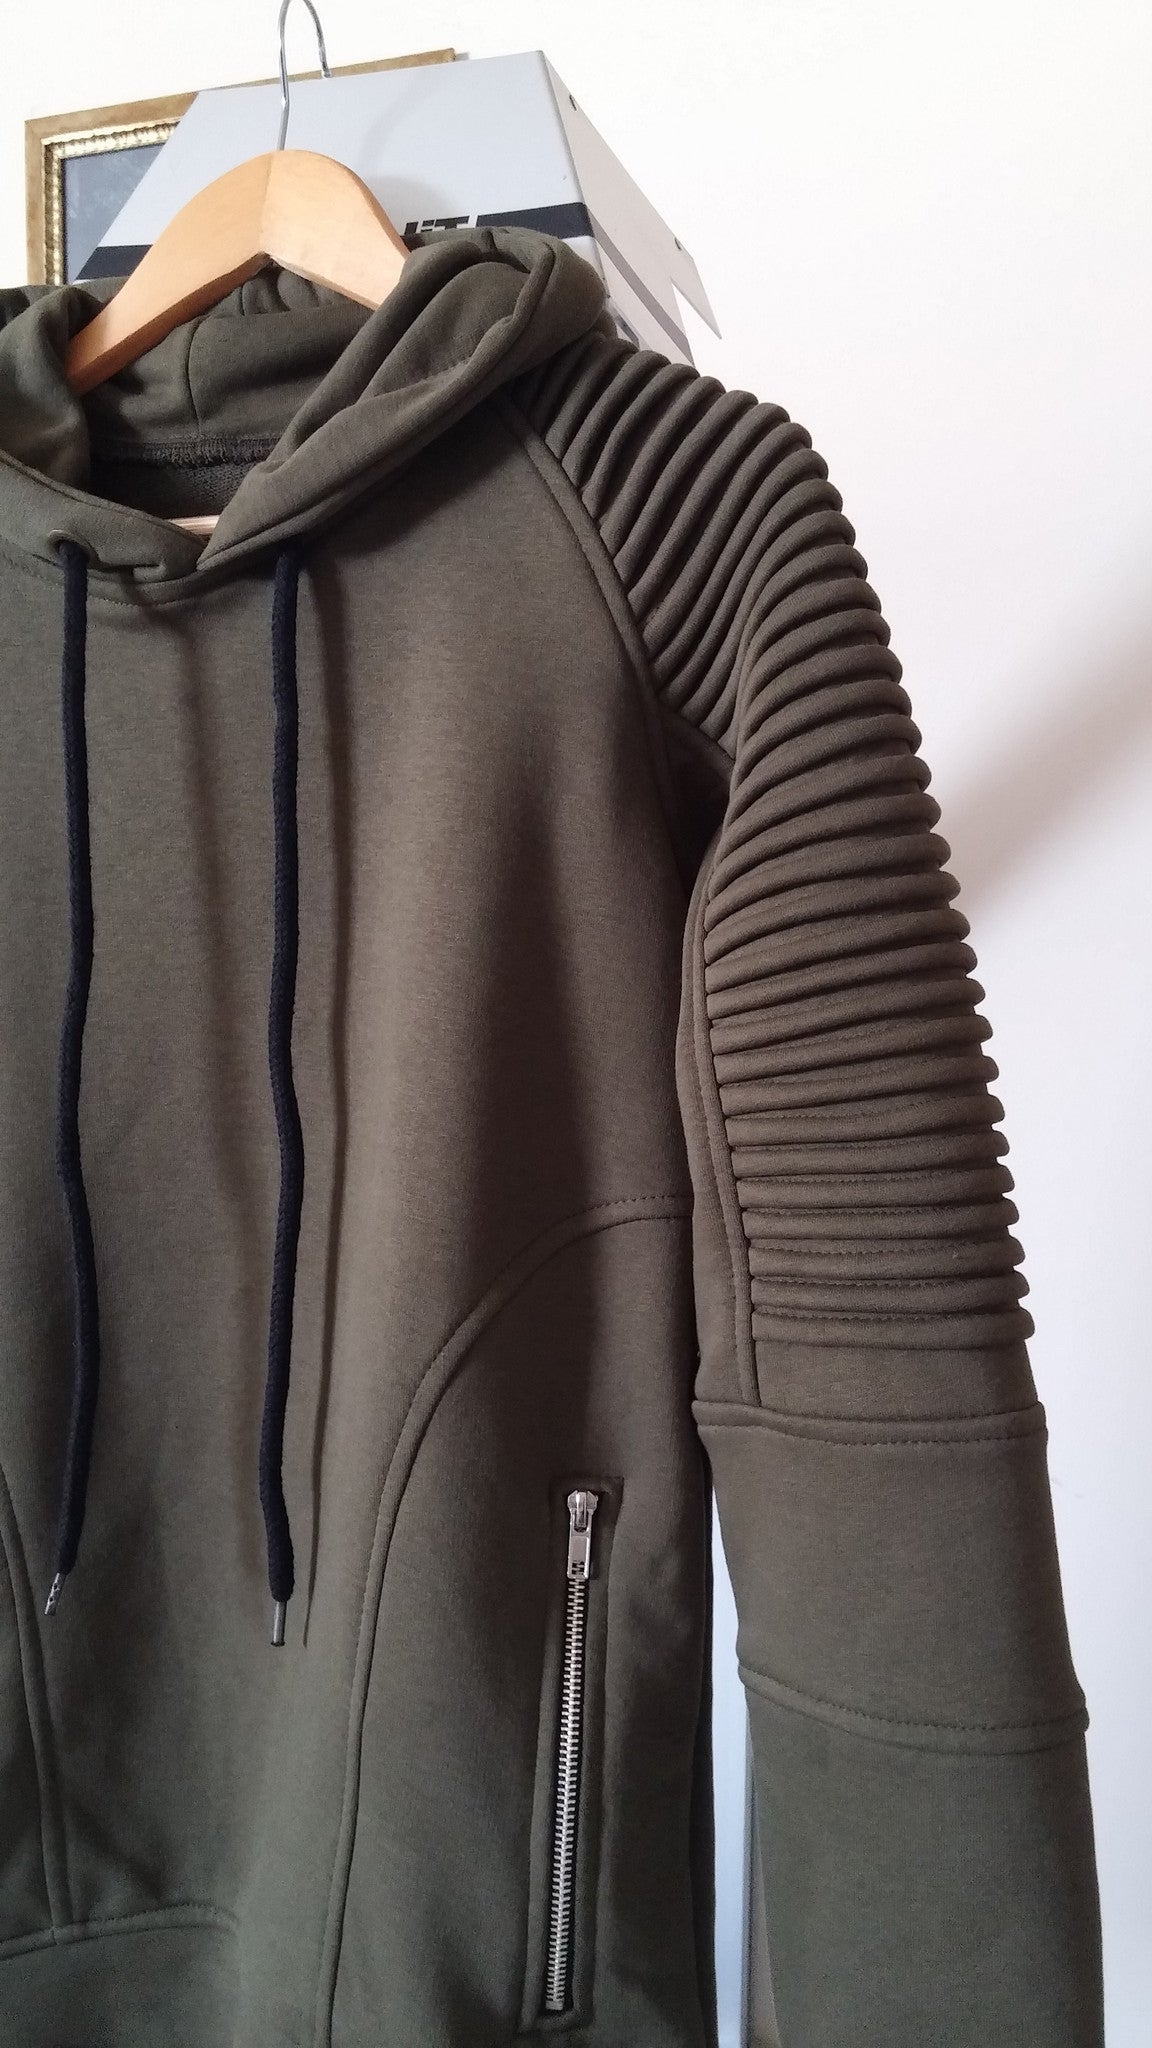 Men's Quilted Shoulder Front Zippers Sweatshirt Hoodie  / Skinny Fit Sweater